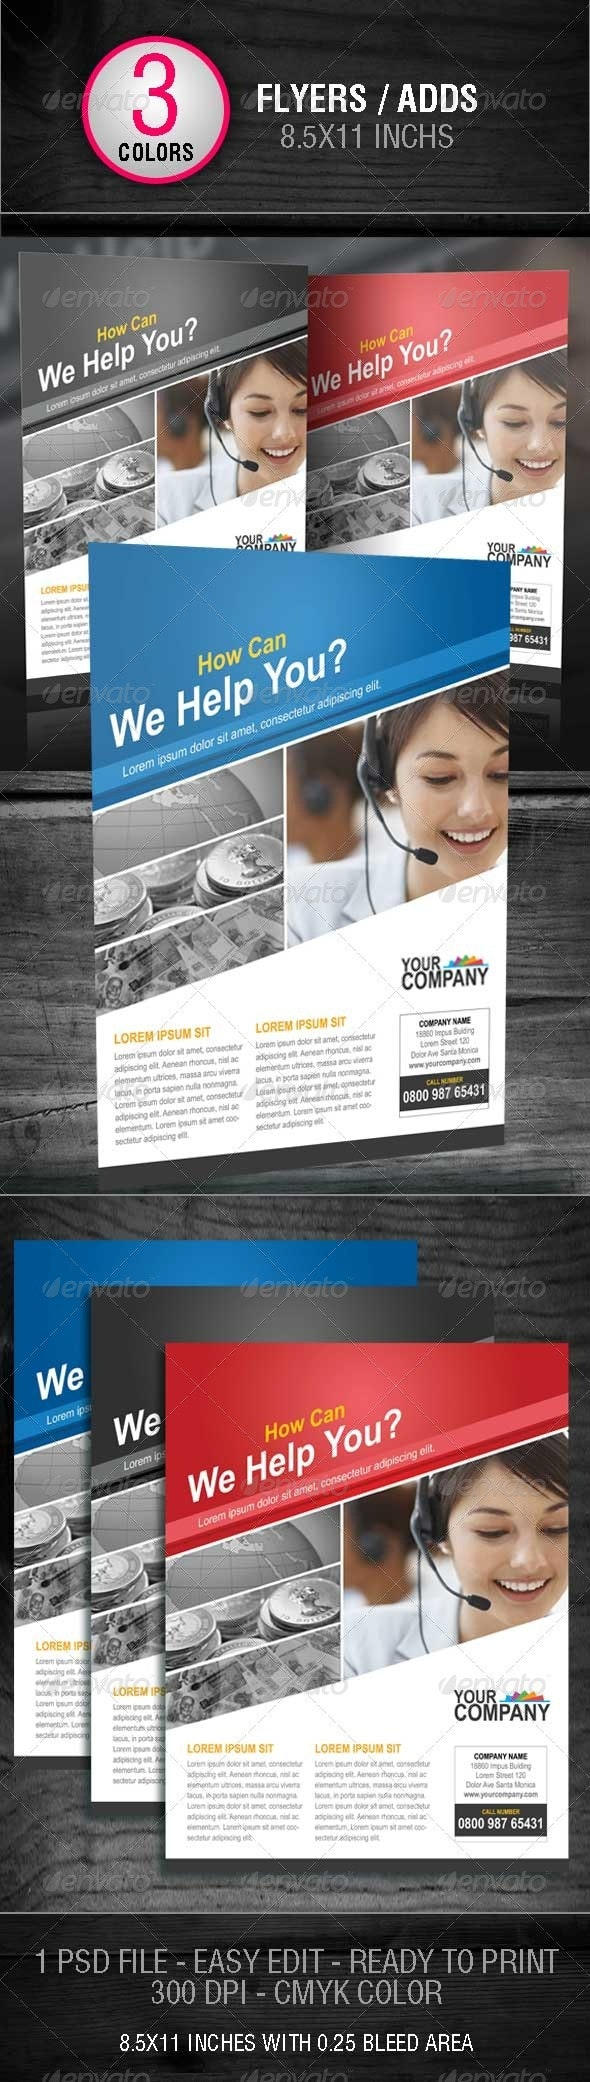 Business Flyer Template With 3 Color Schemes - Flyers Print Templates